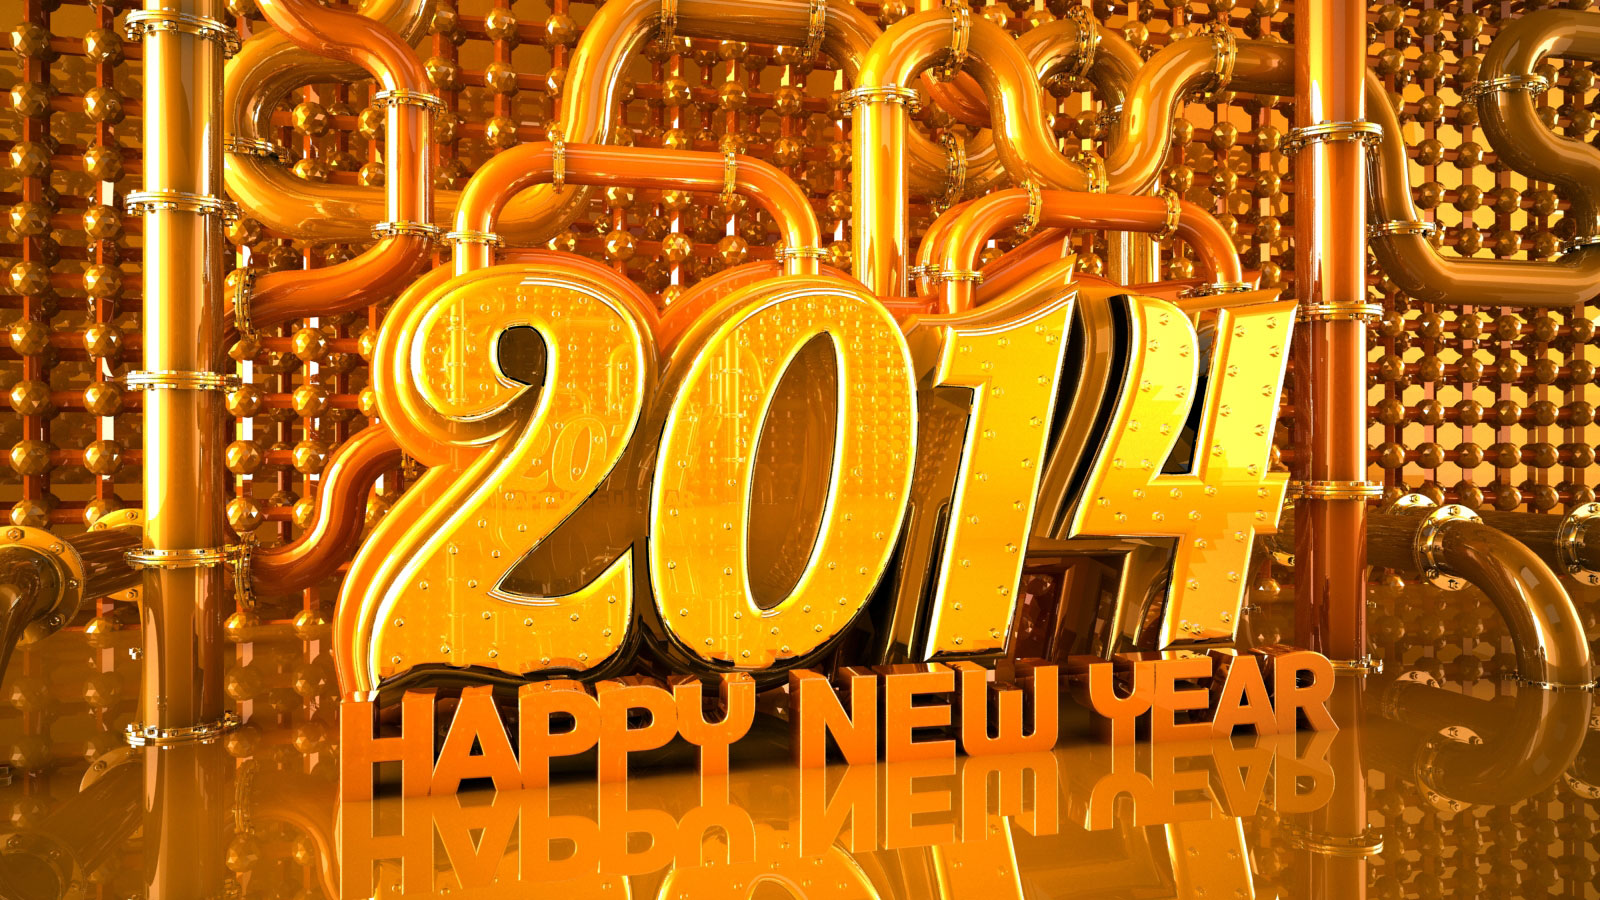 happy new year 2014 desktop background